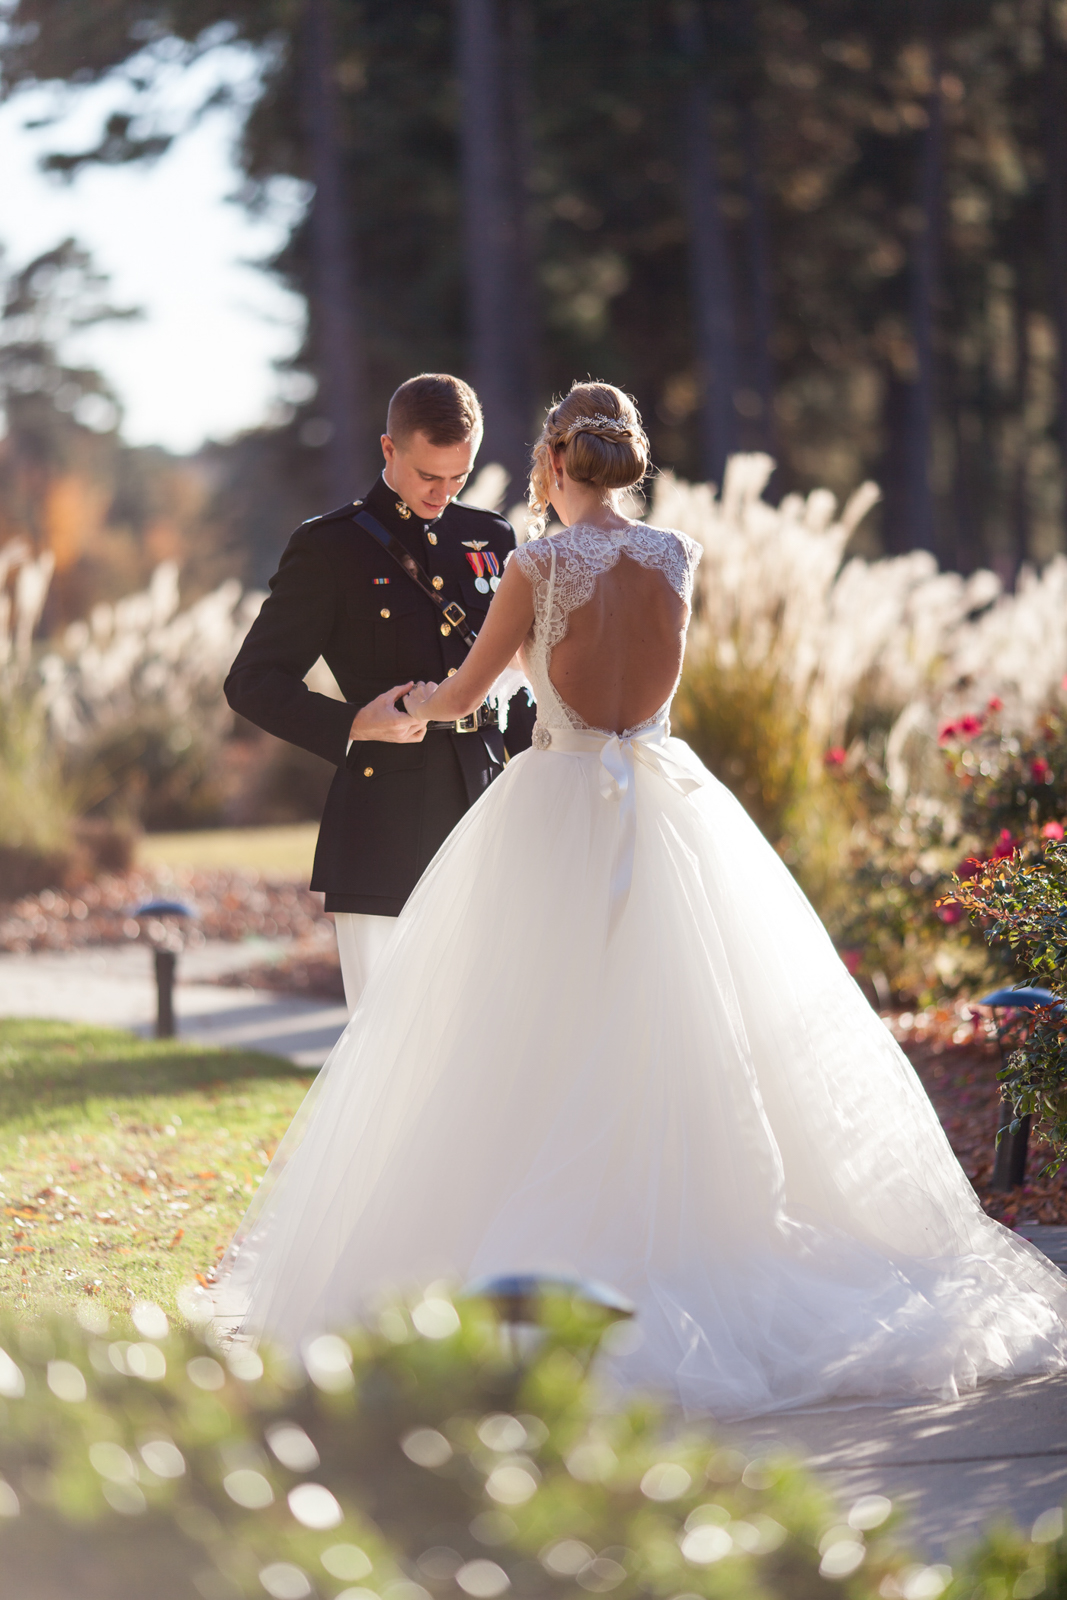 Military groom and bride in tulle skirt